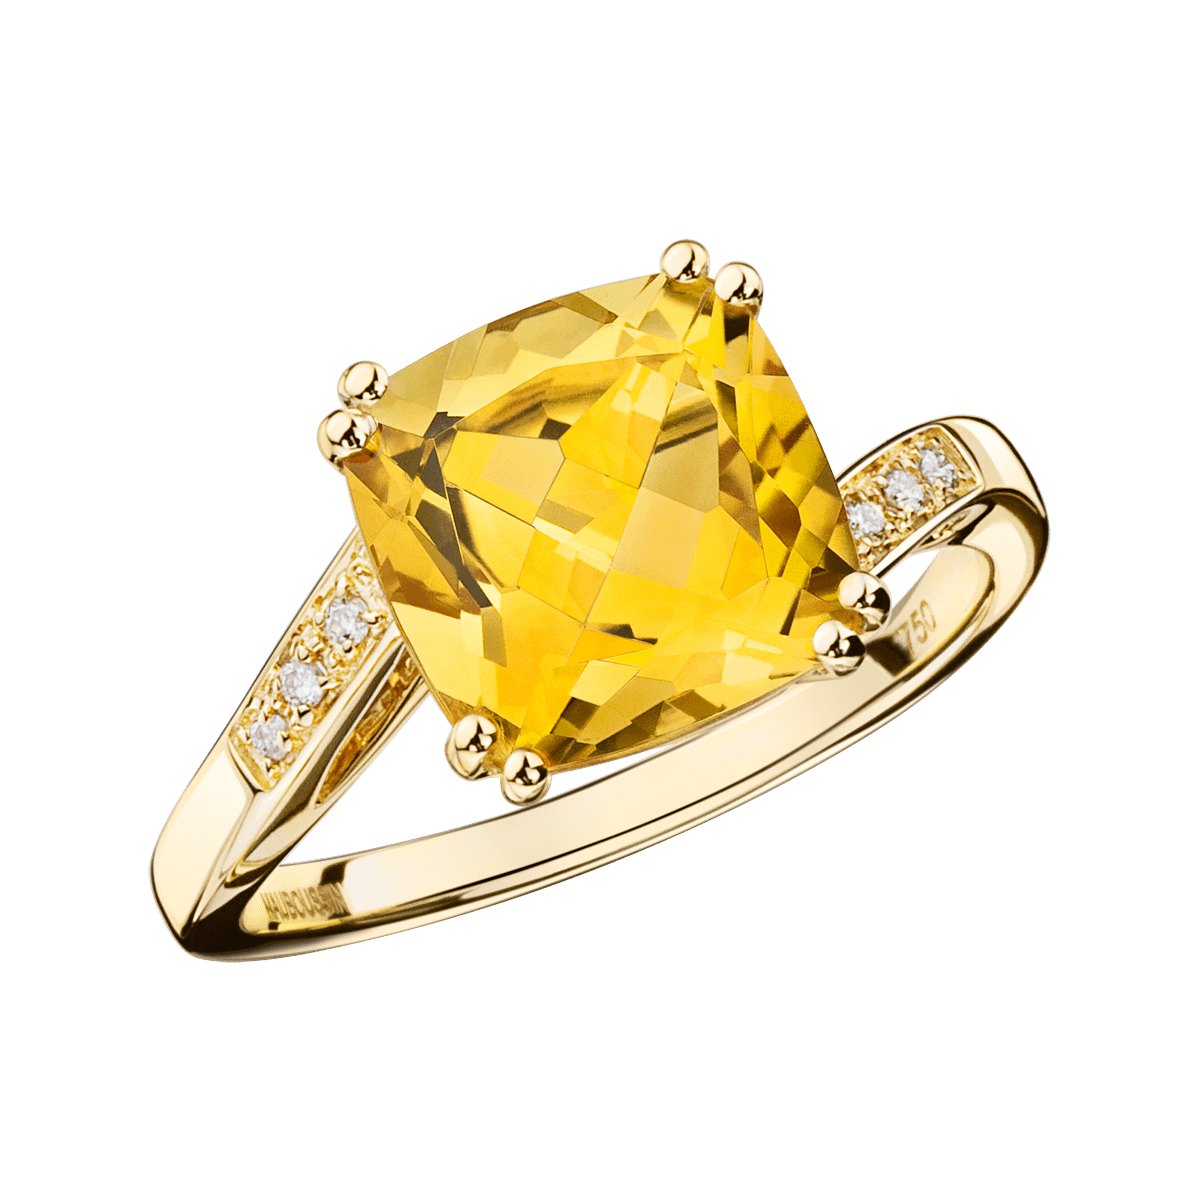 Top Bague Môme Je T'aime, or jaune, citrine et diamants - Mauboussin  TX33